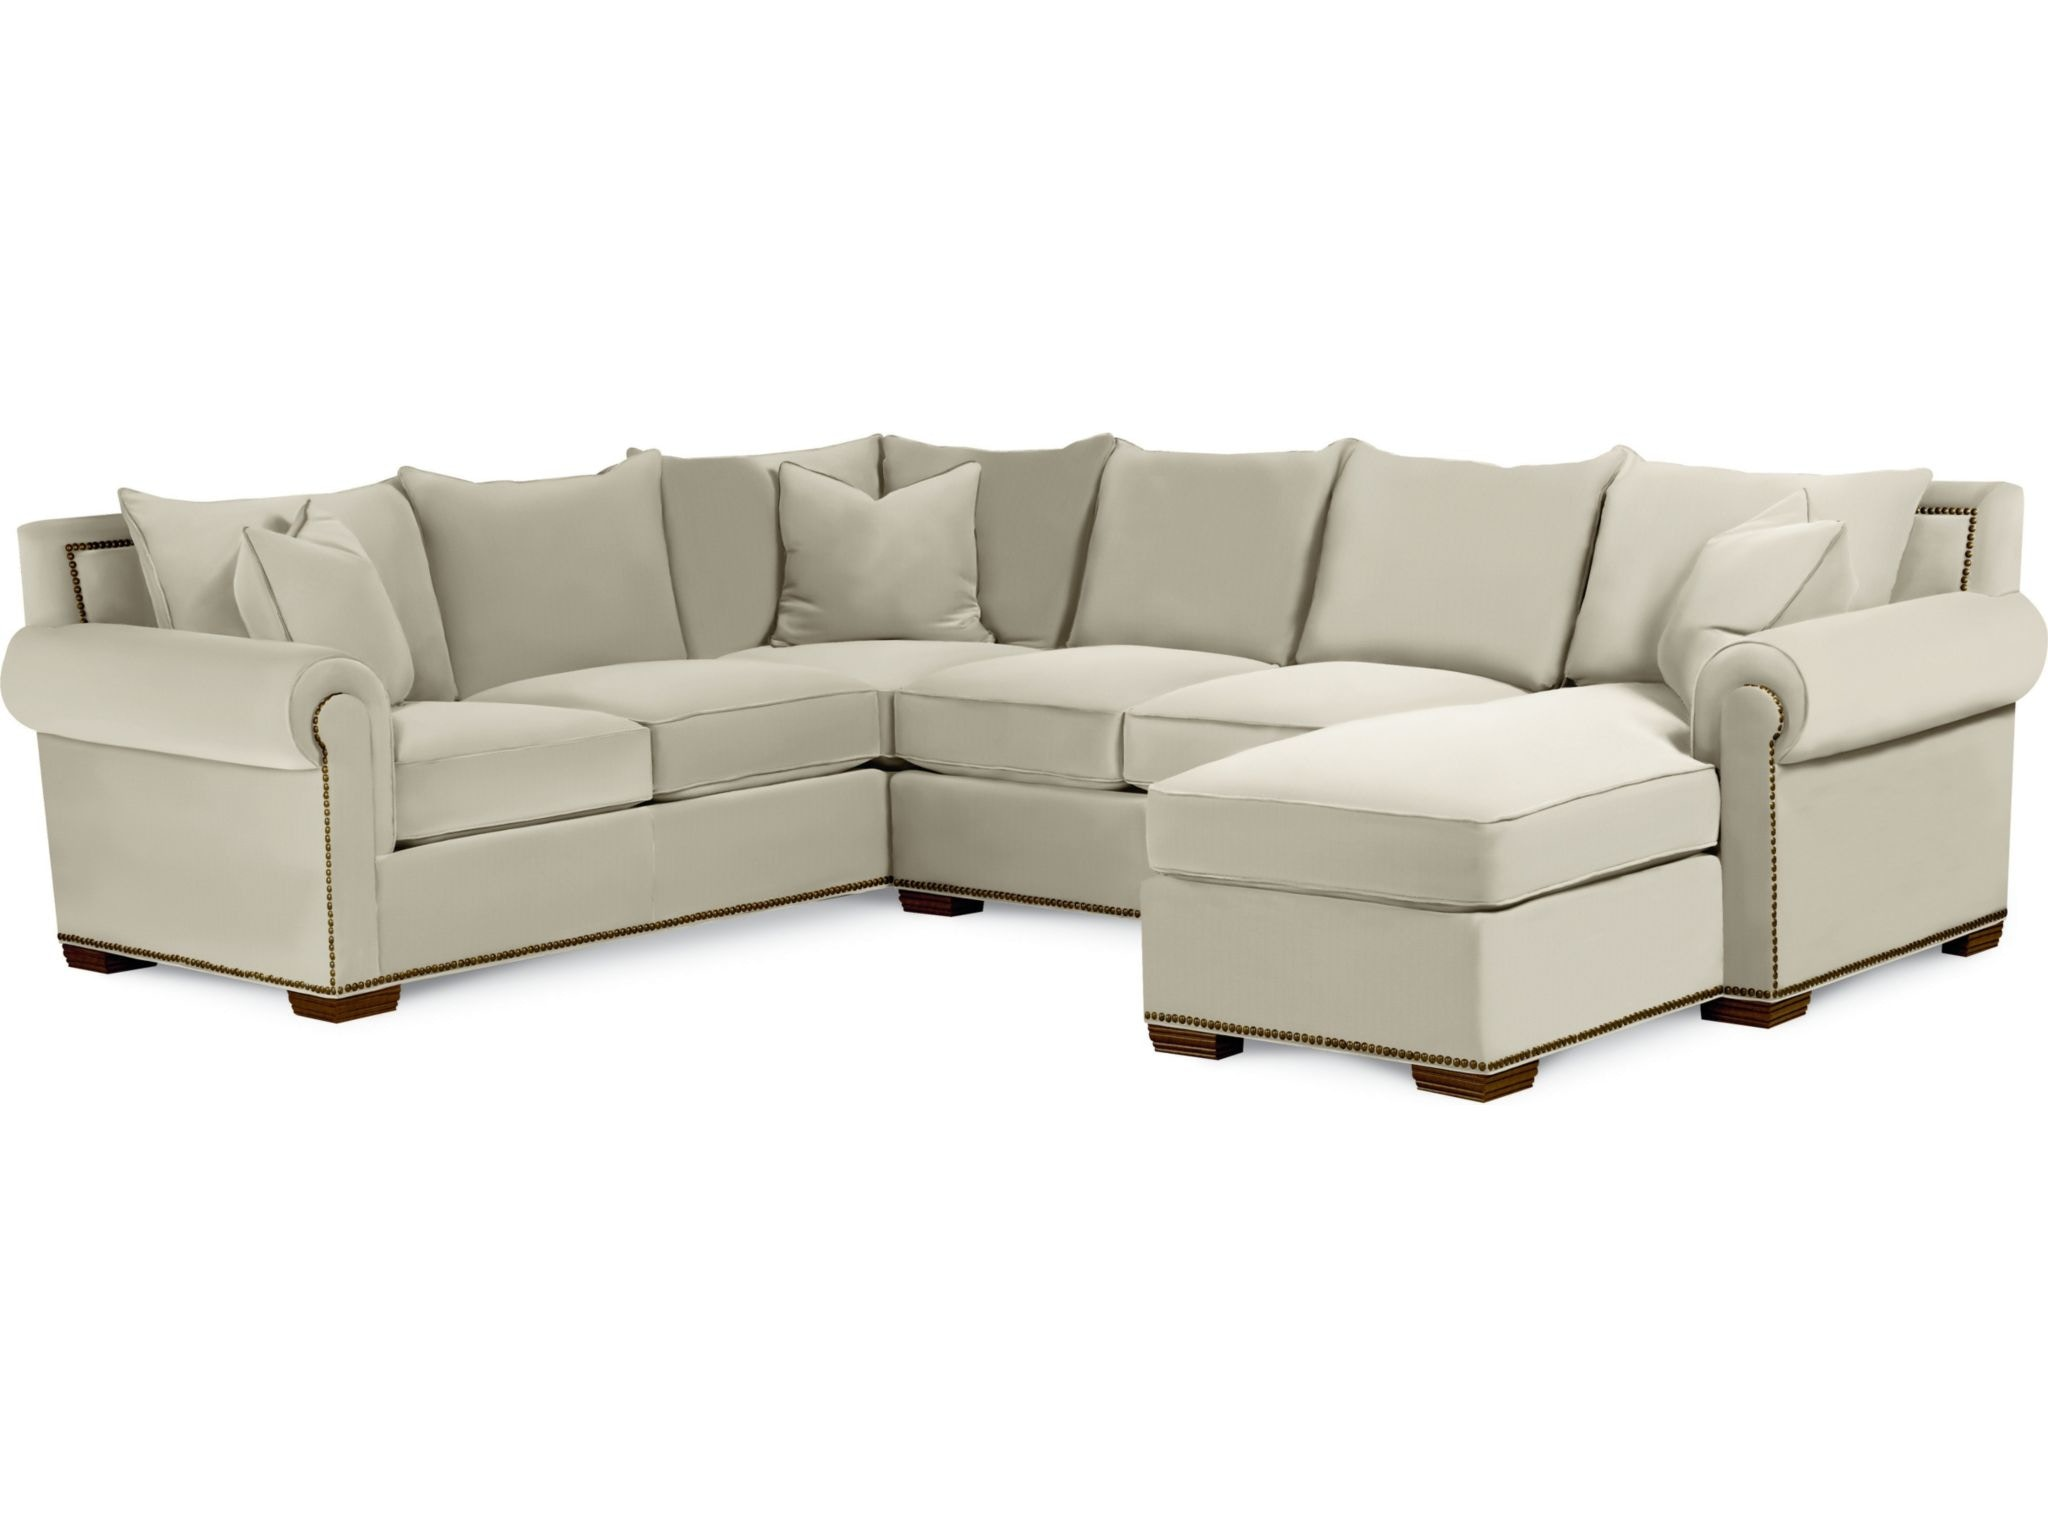 Thomasville Living Room Fremont Right Arm Sofa